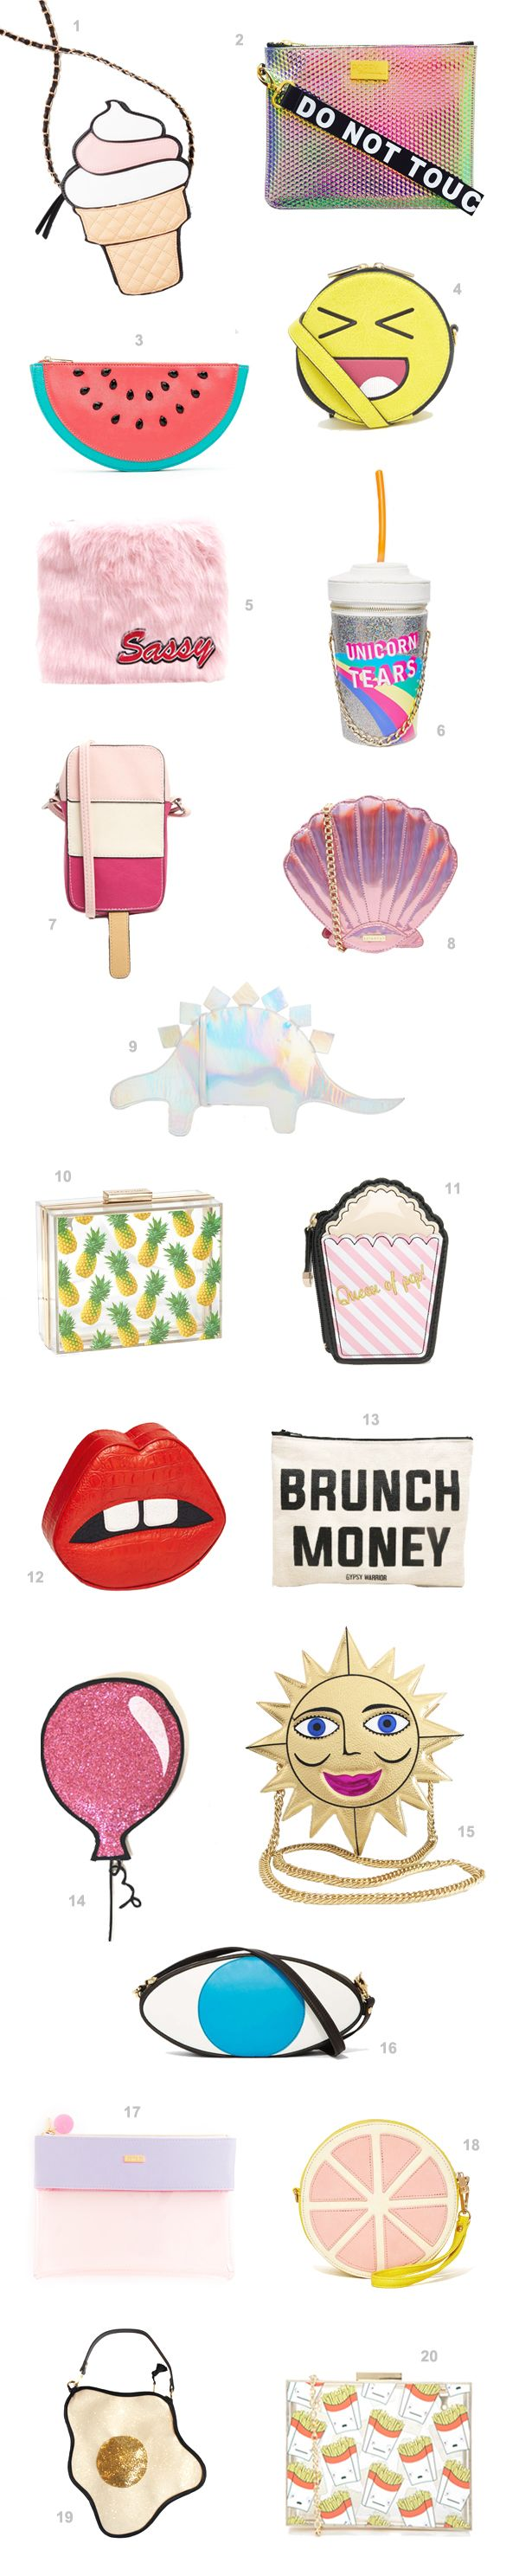 Cant Clutch This: 20 Quirky Clutches You Gotta Have